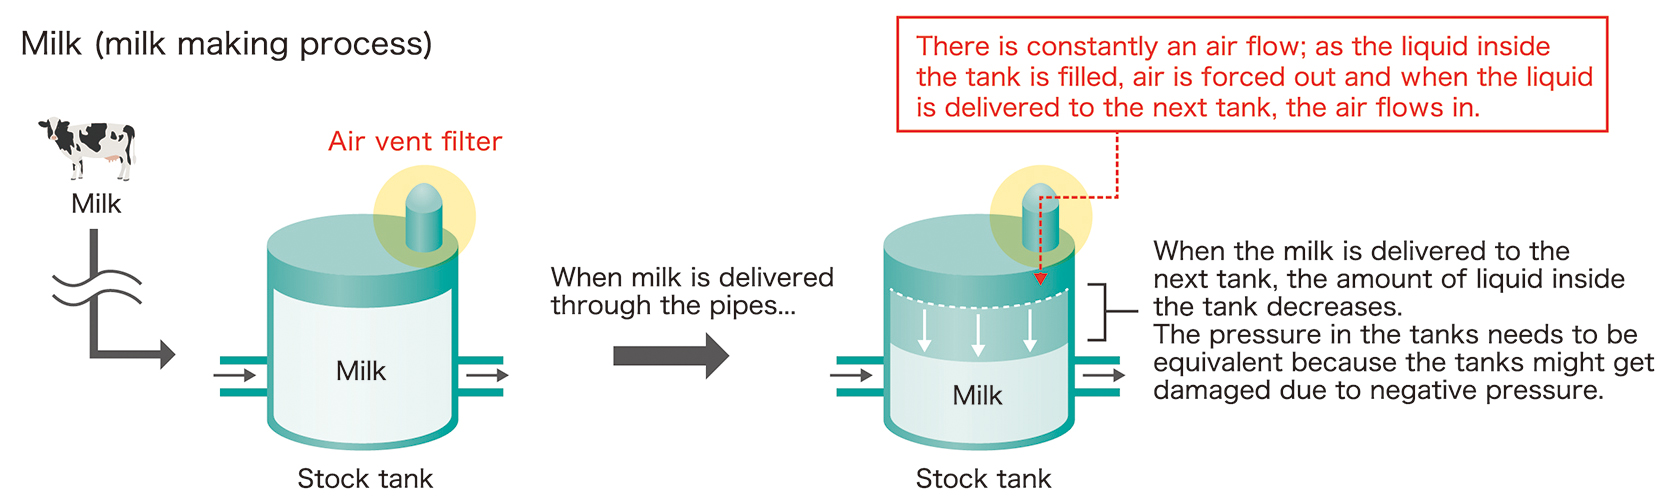 [image] Milk making process, using Air vent filters on top of milk stock tanks because of constant air flow from liquid being poured in and out of tanks